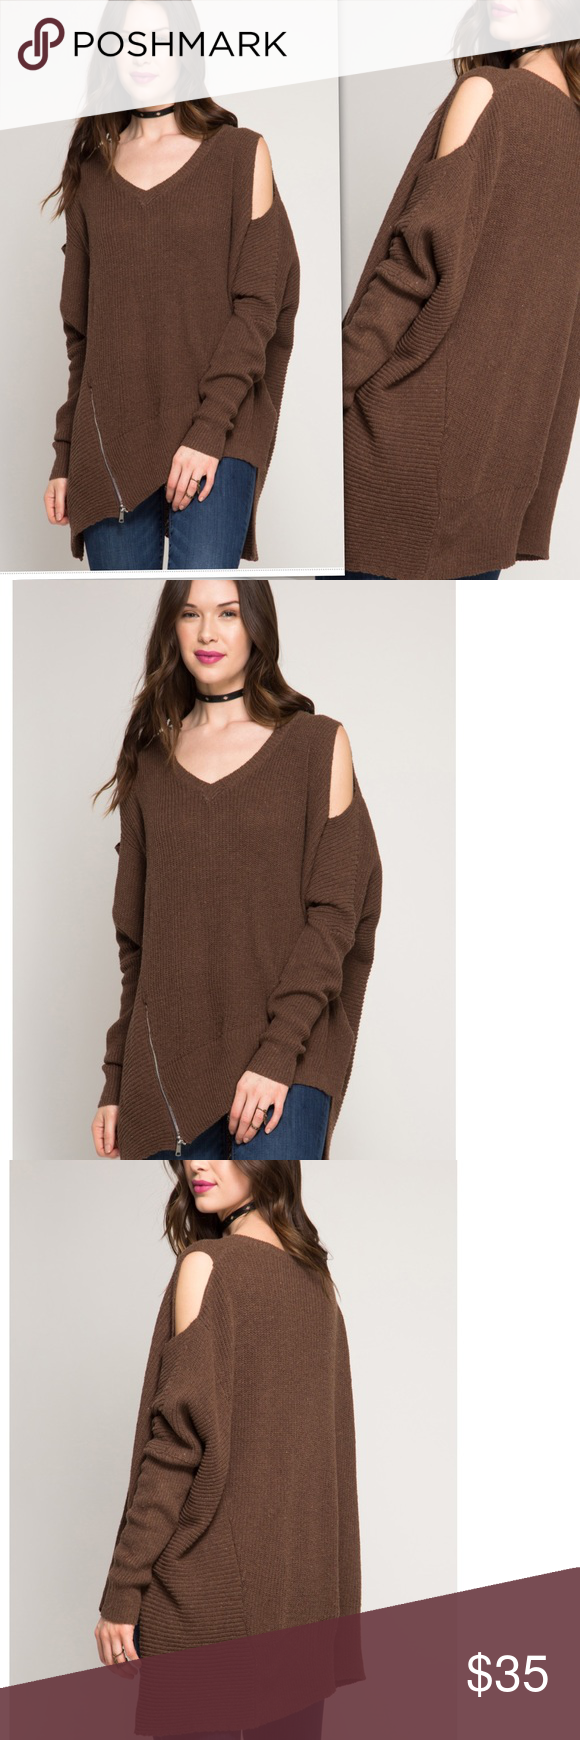 COMING SOON COLD SHOULDER SWEATER W/ FRONT ZIPPER LONG SLEEVE COLD SHOULDER SWEATER WITH FRONT ZIPPER DETAIL  S:60%COTTON 40%ACRYLIC KNIT SWEATER Sweaters